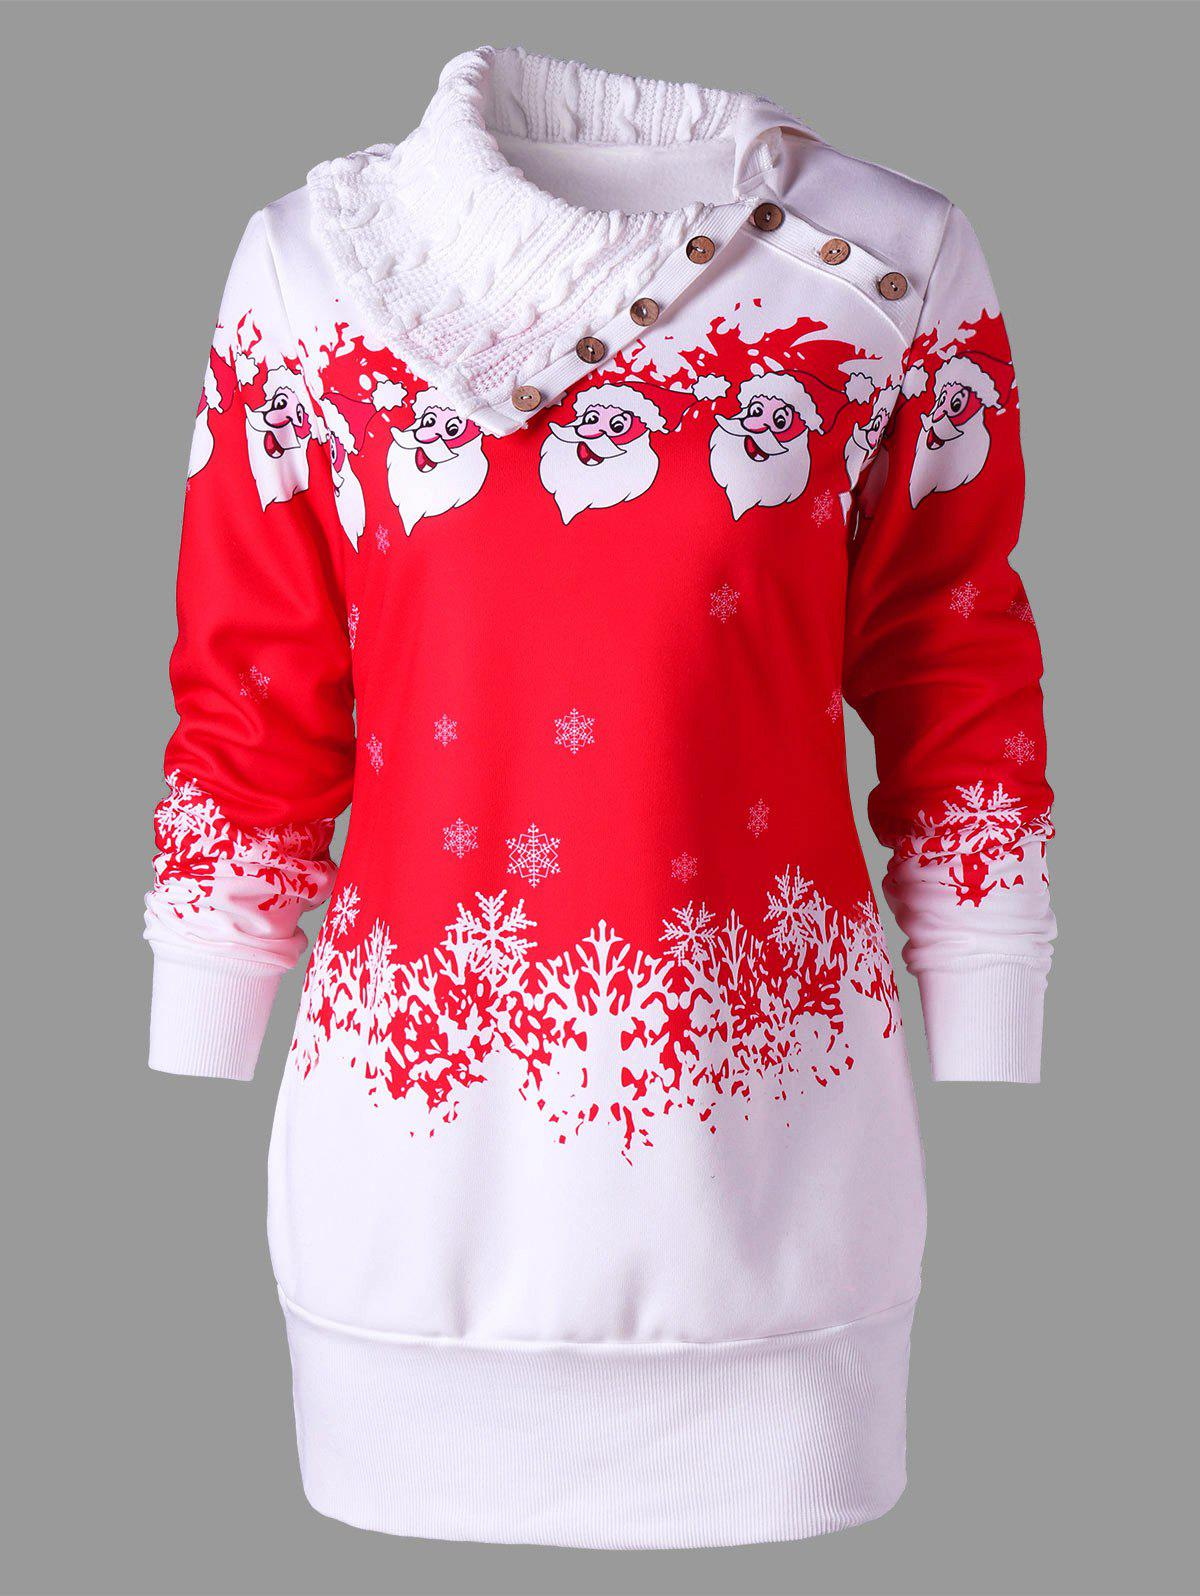 Santa Claus Print Plus Size Tunic Sweatshirt DressWOMEN<br><br>Size: XL; Color: RED; Style: Cute; Material: Polyester; Silhouette: Bodycon; Dresses Length: Mini; Neckline: Flat Collar; Sleeve Length: Long Sleeves; Waist: Natural; Embellishment: Button; Pattern Type: Character,Print; With Belt: No; Season: Fall,Spring,Winter; Weight: 0.6200kg; Package Contents: 1 x Dress;